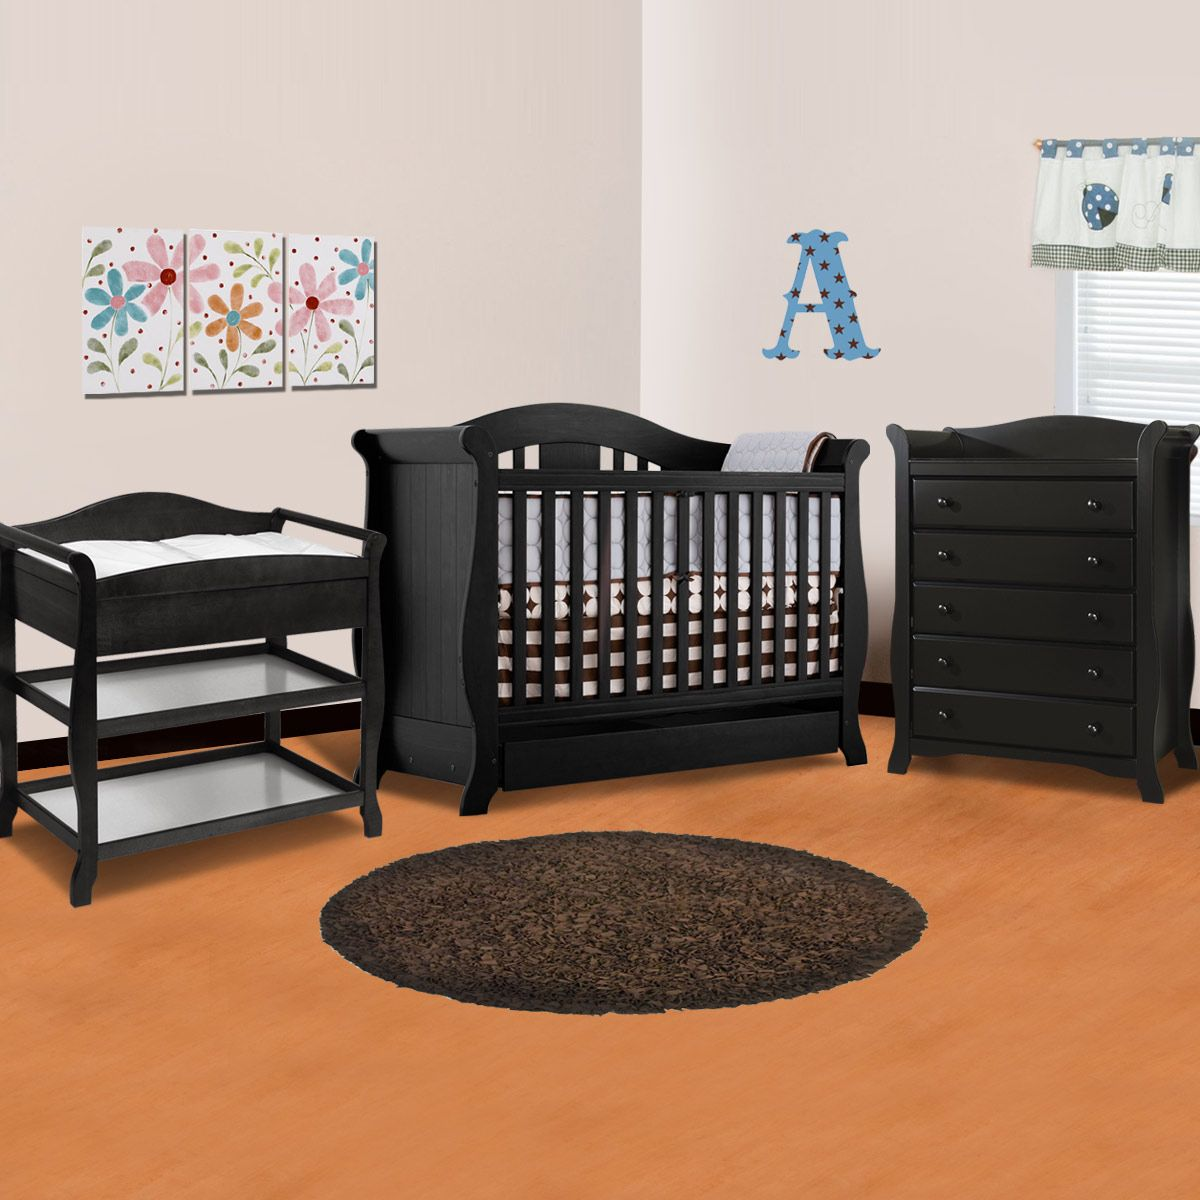 Storkcraft 3 Piece Nursery Set Vittoria Convertible Crib Aspen Changing Table And Avalon 5 Drawer Dresser In Black